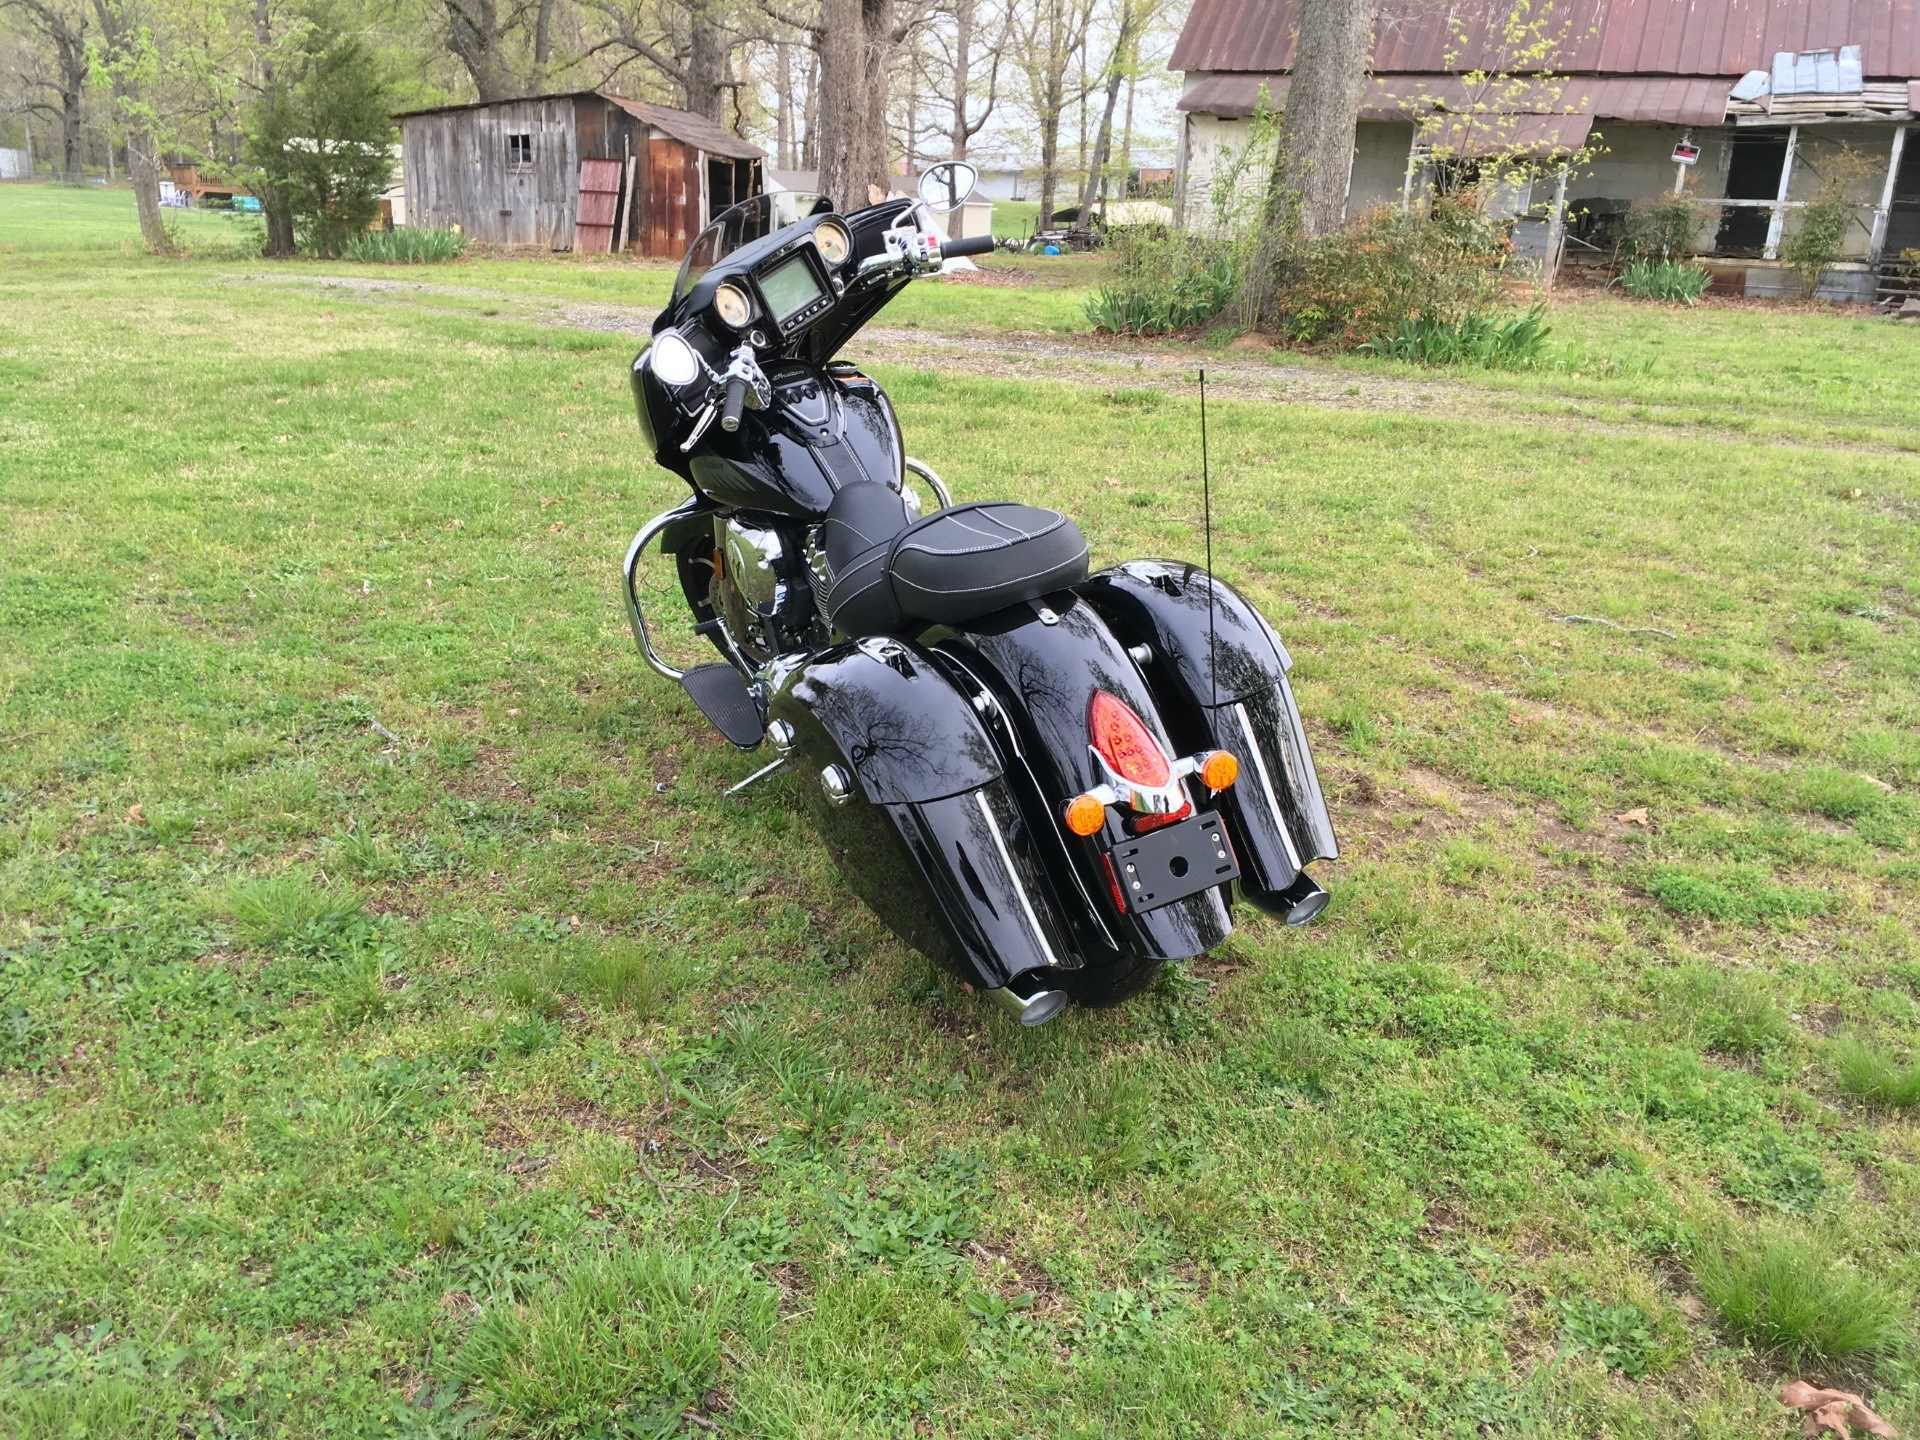 2017 Indian Chieftain Limited 8